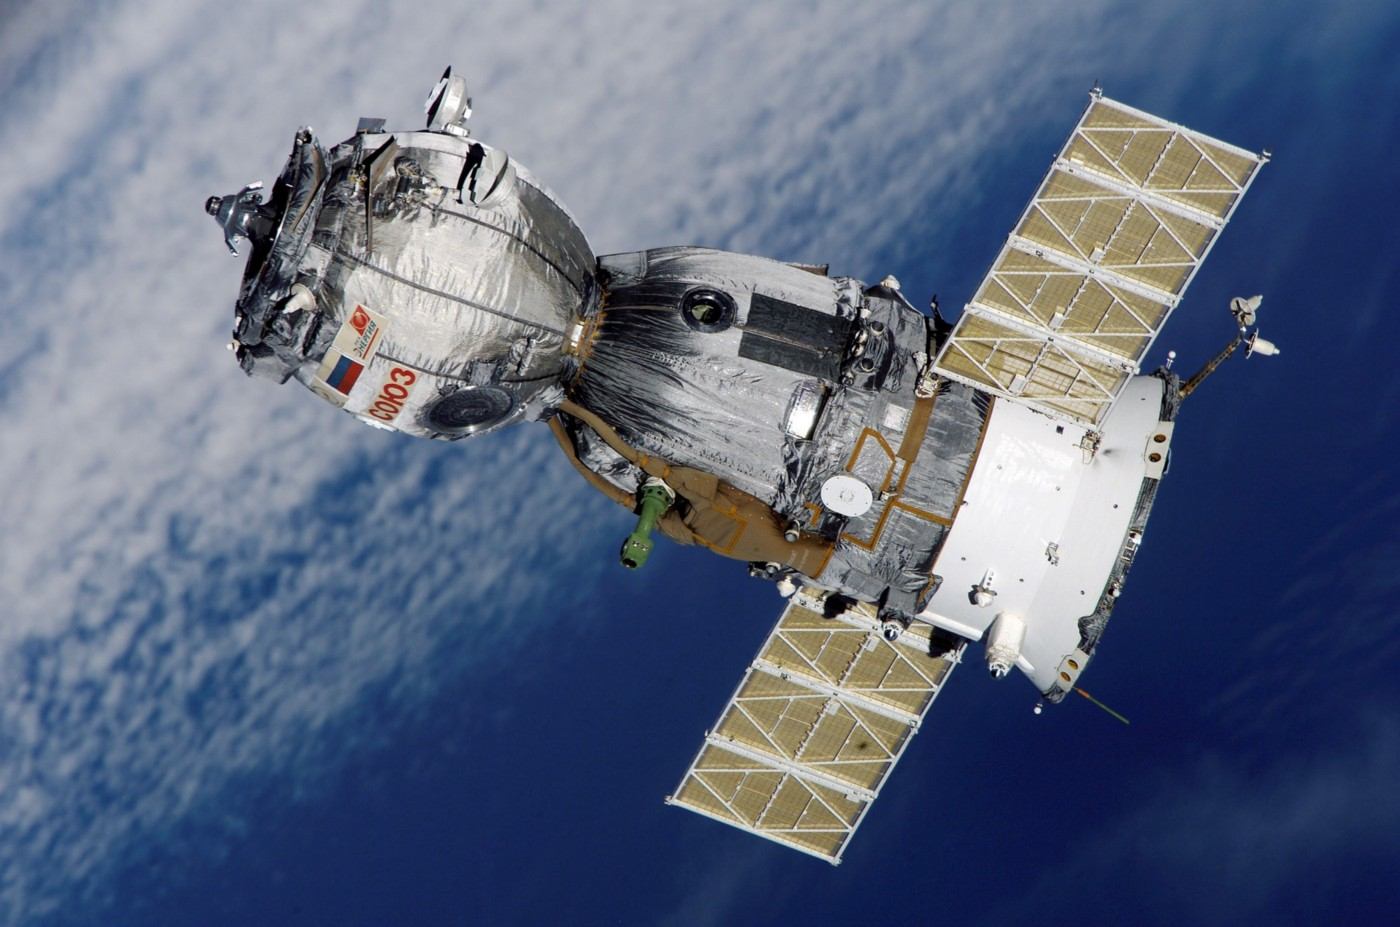 There's enough space junk orbiting Earth to make some scientists concerned.